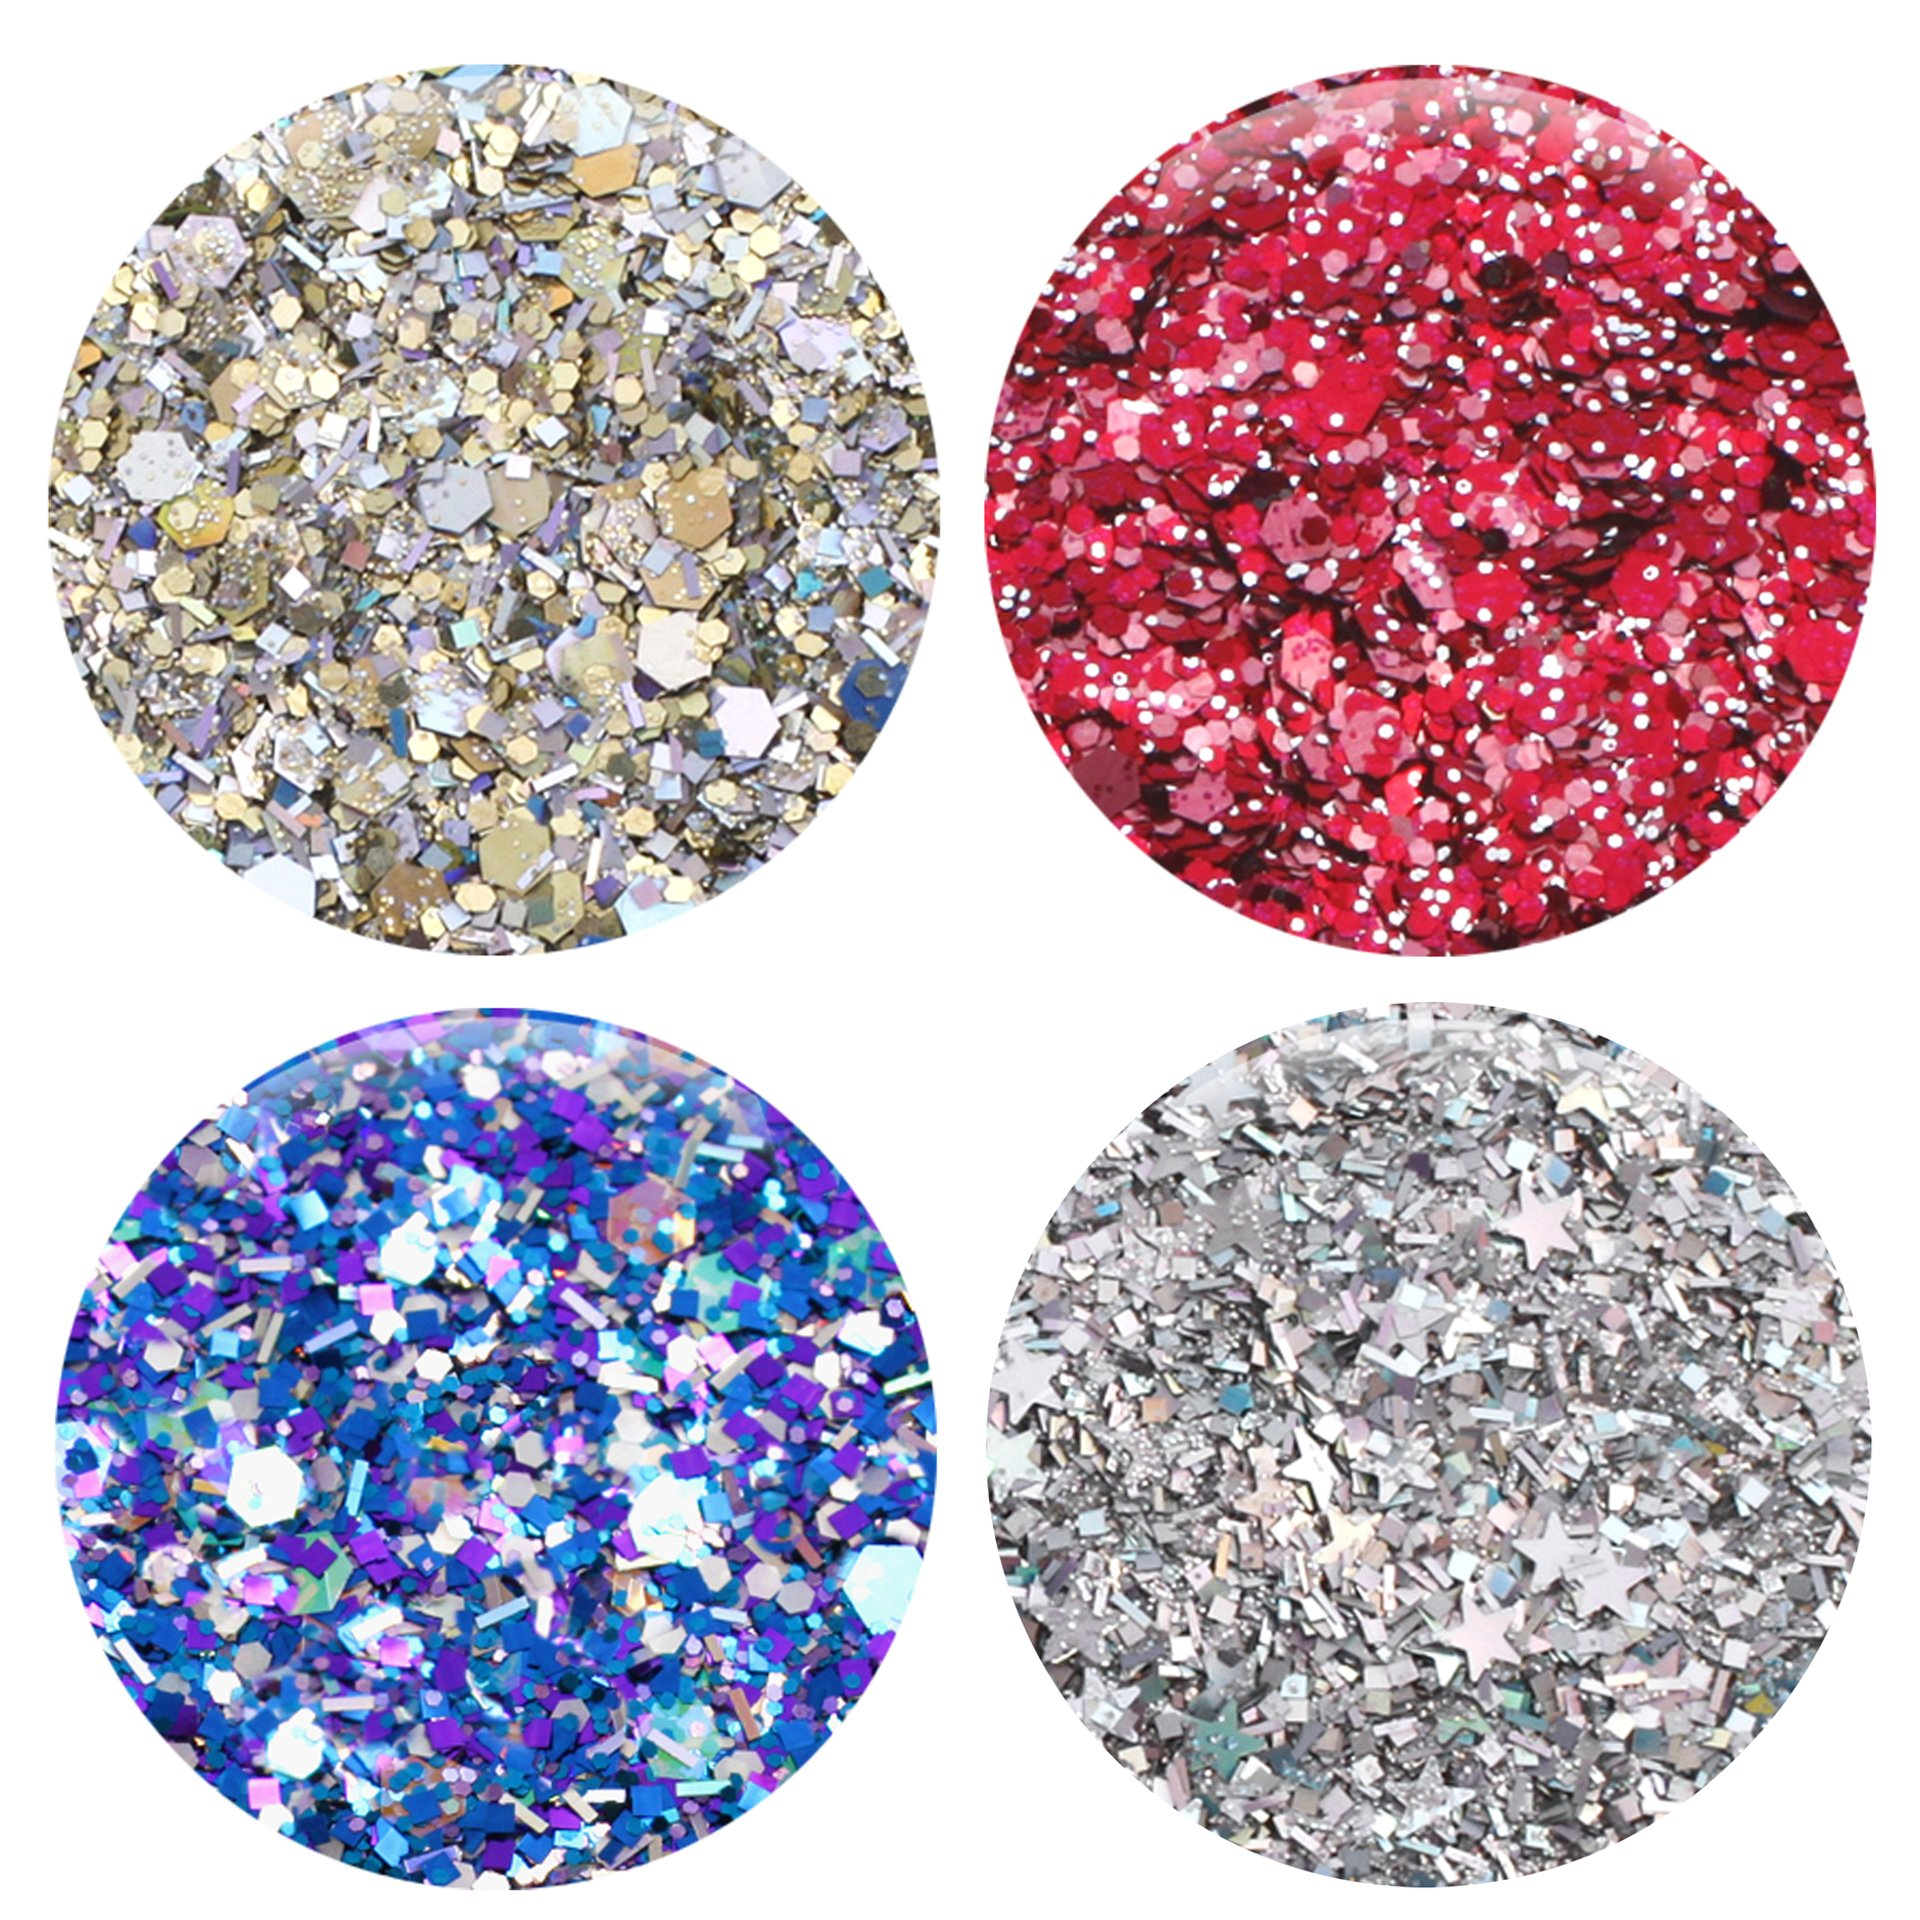 Mixed Glitter 20 Piece Kit - Includes Solvent Resistant Dust, Powder, Hexagon, Holographic, Matte Glitters - Great for Nail Art Polish, Gels, Art and Crafts, Paints & Acrylics Supplies - 1/4 OZ Jars by Glitties (Image #5)